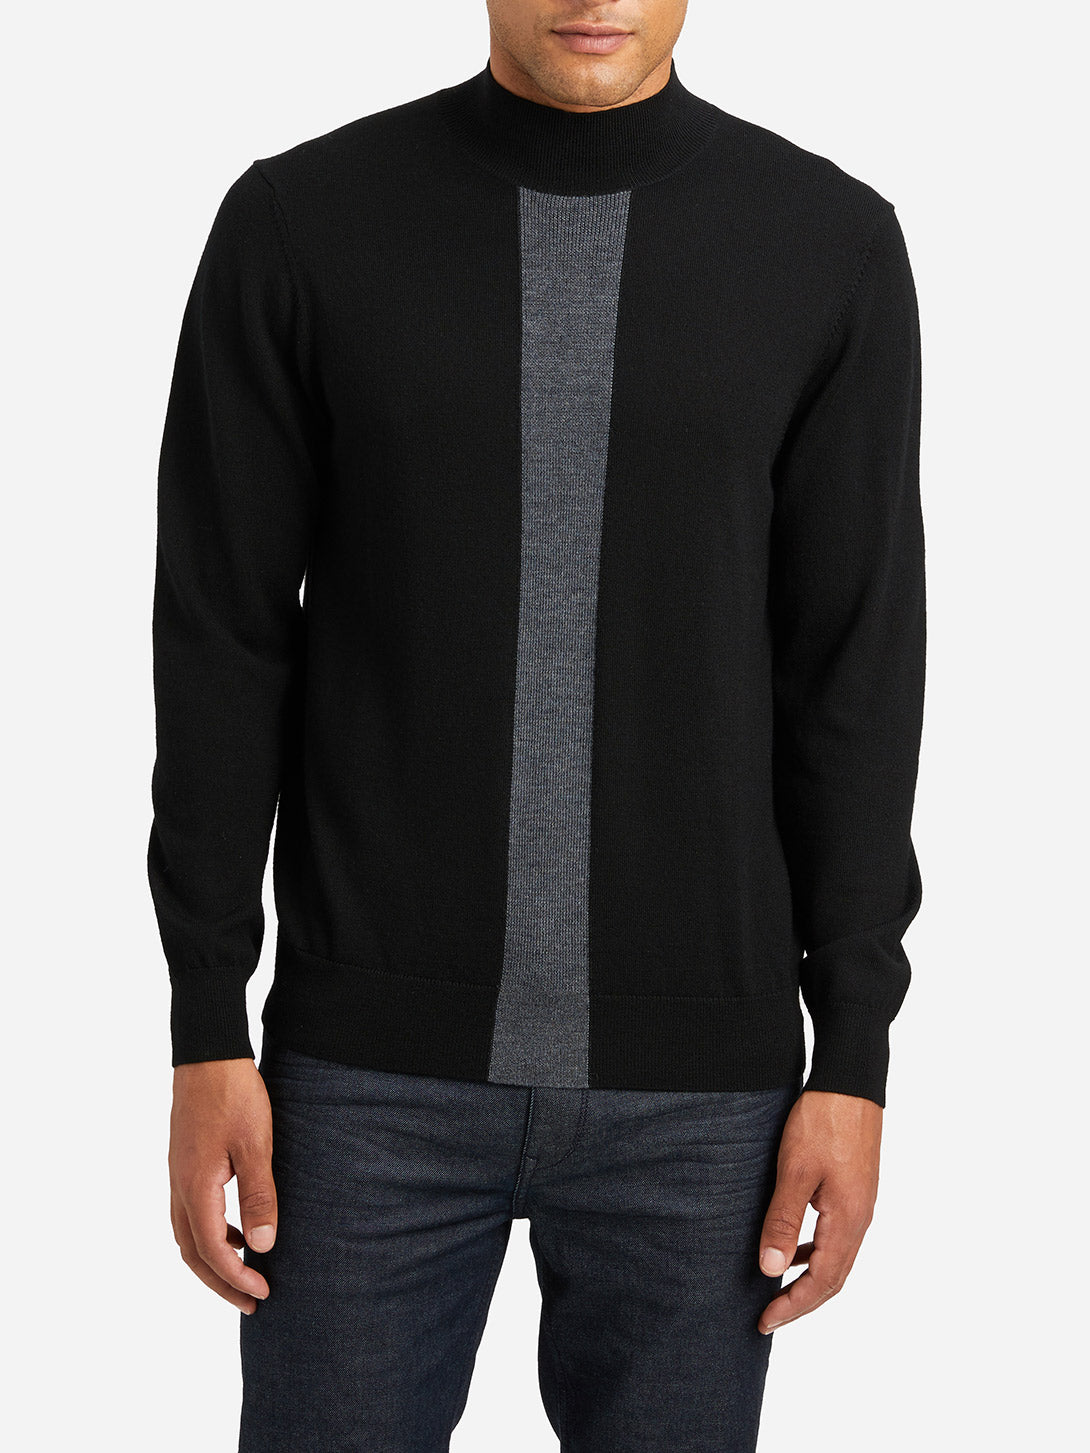 JET BLACK STRIPE sweaters for men mason mock neck sweater ons clothing